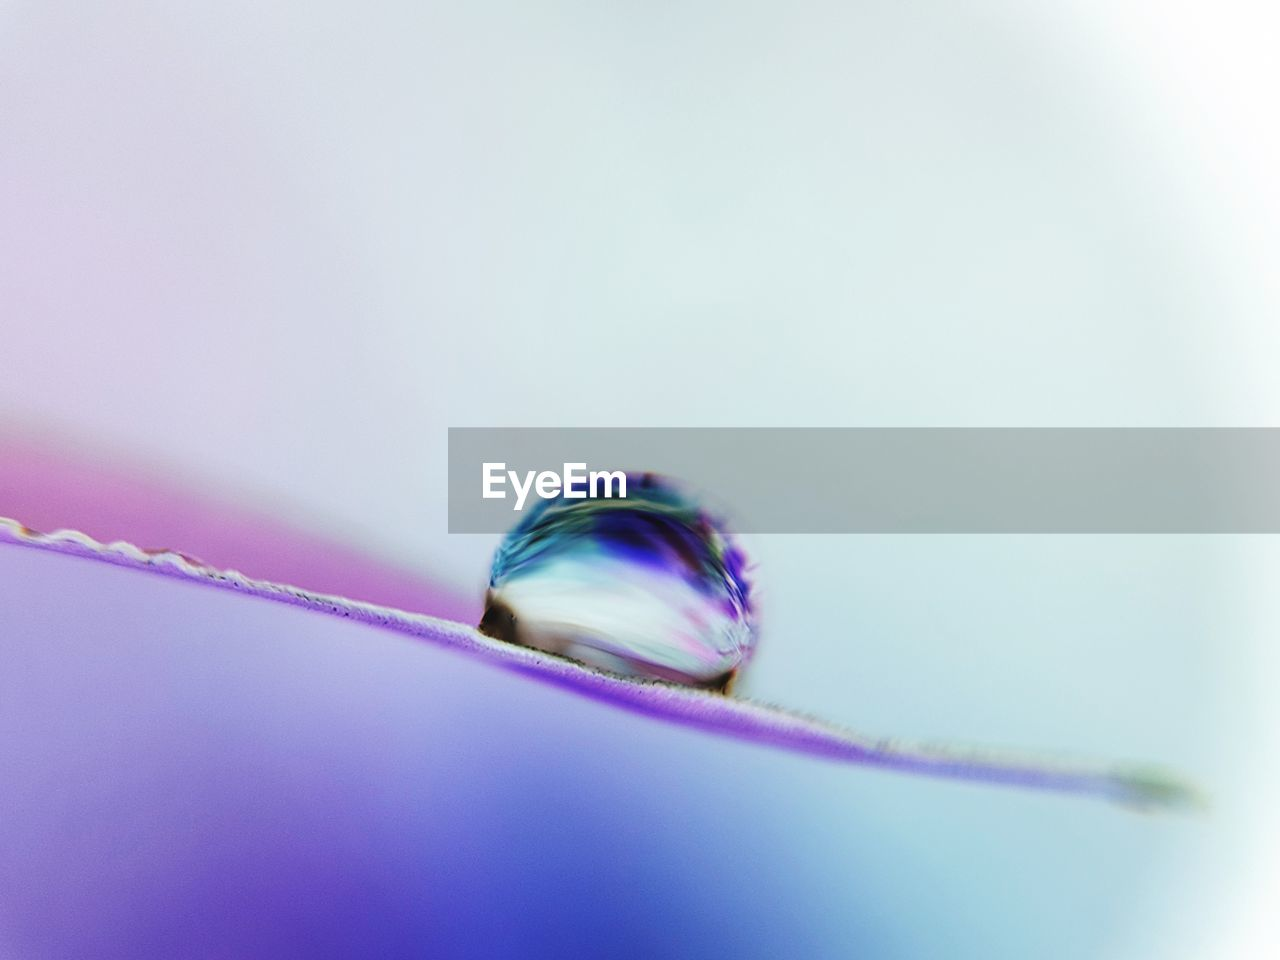 fragility, close-up, nature, no people, studio shot, beauty in nature, water, white background, day, freshness, outdoors